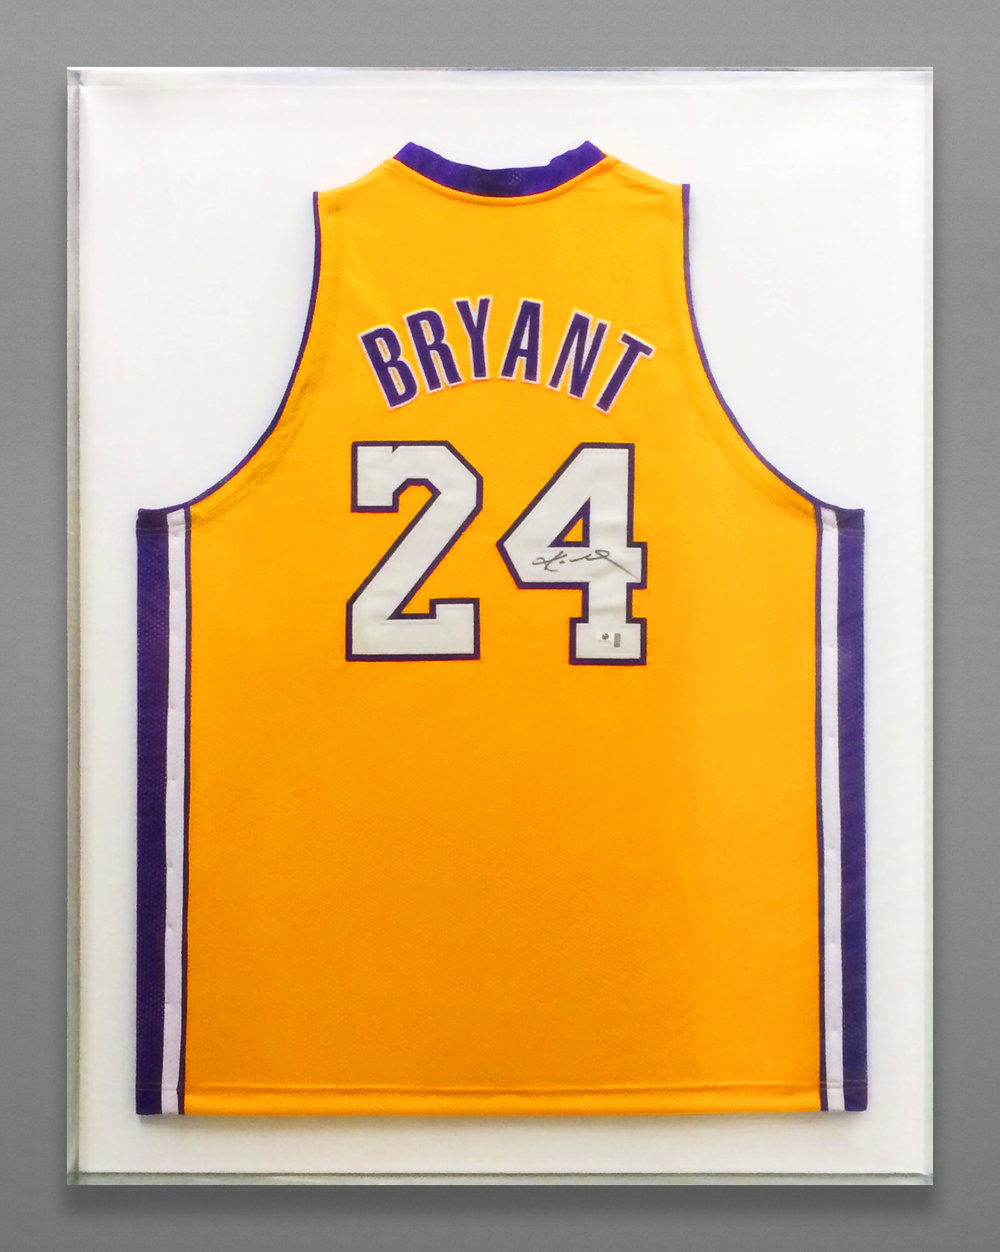 kobe-bryant-jersey-signed-memorabilia-framed-peters-gallery-orange-county-newport-beach-irvine-los-angeles-costa-mesa.jpg